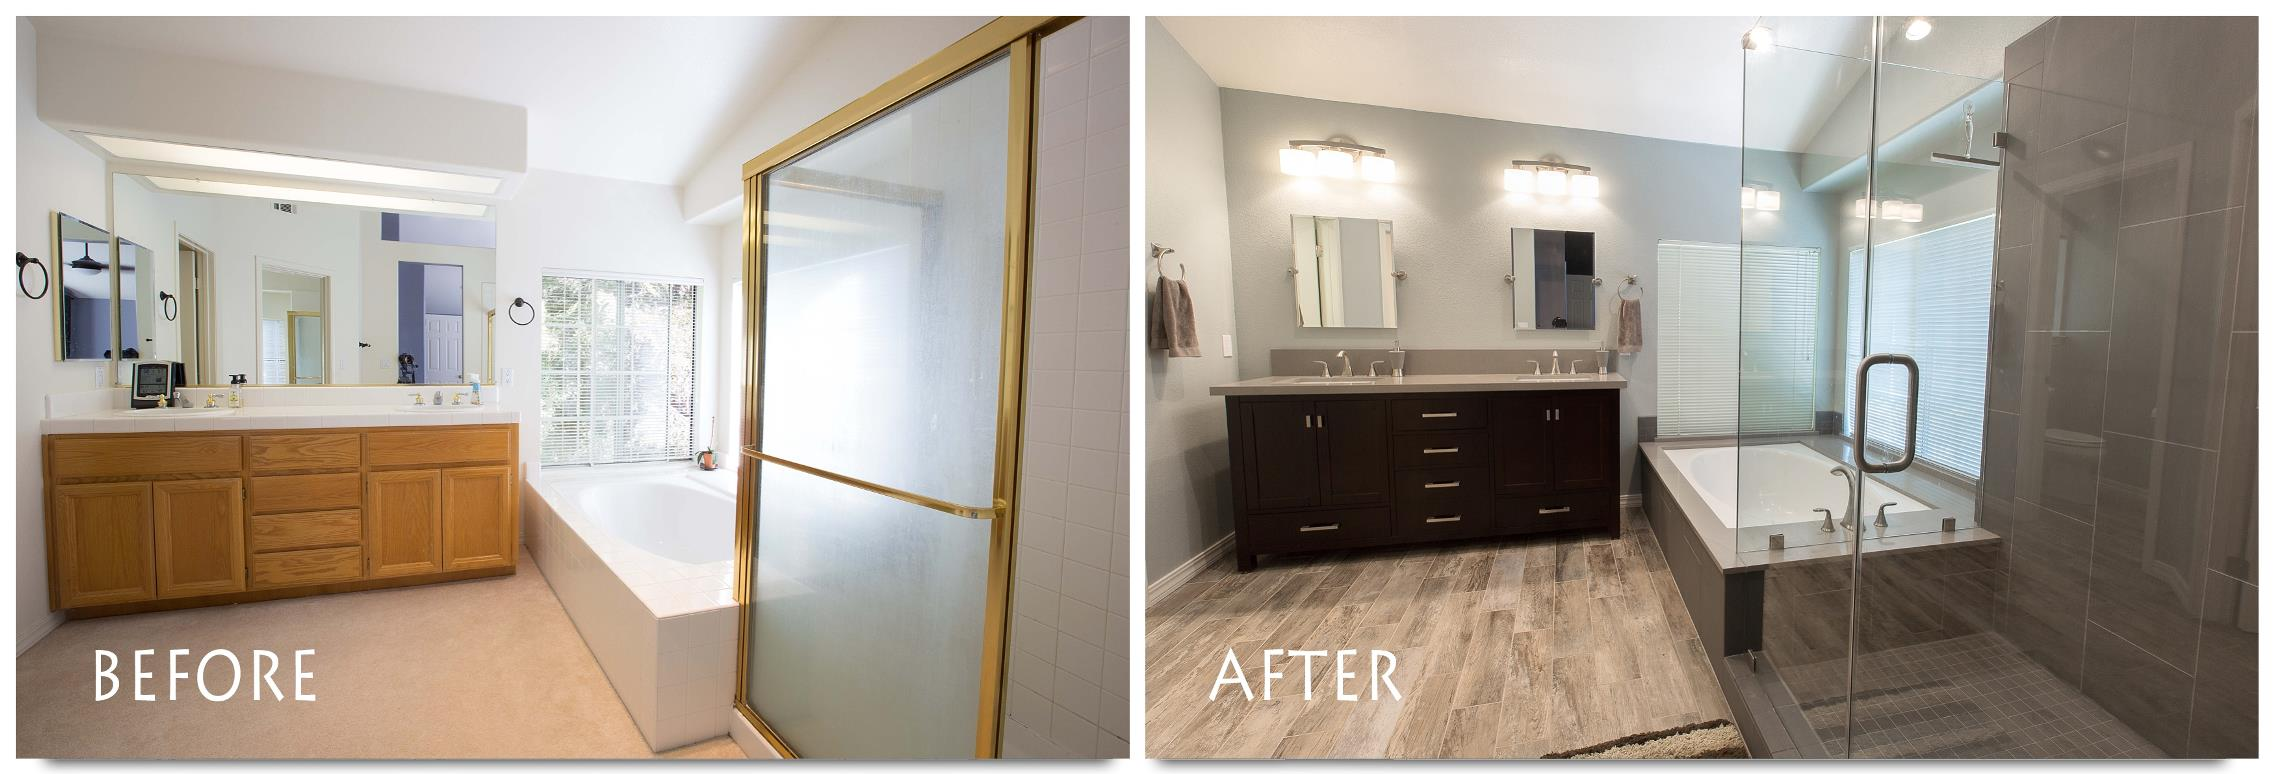 Wonderful Master Bathroom Remodels Before And After To Get